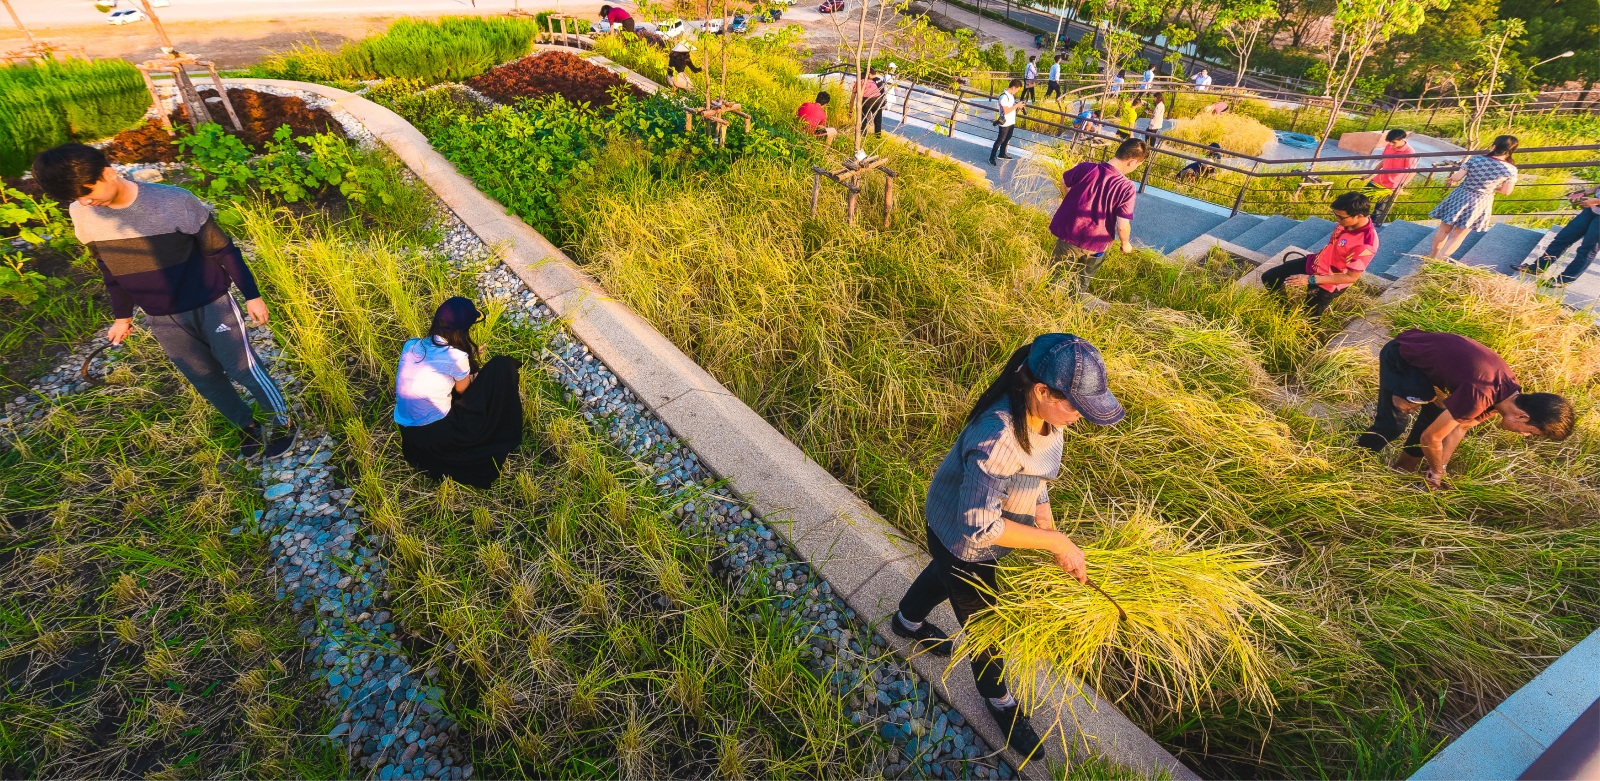 Thammasat University Urban Rooftop Farm